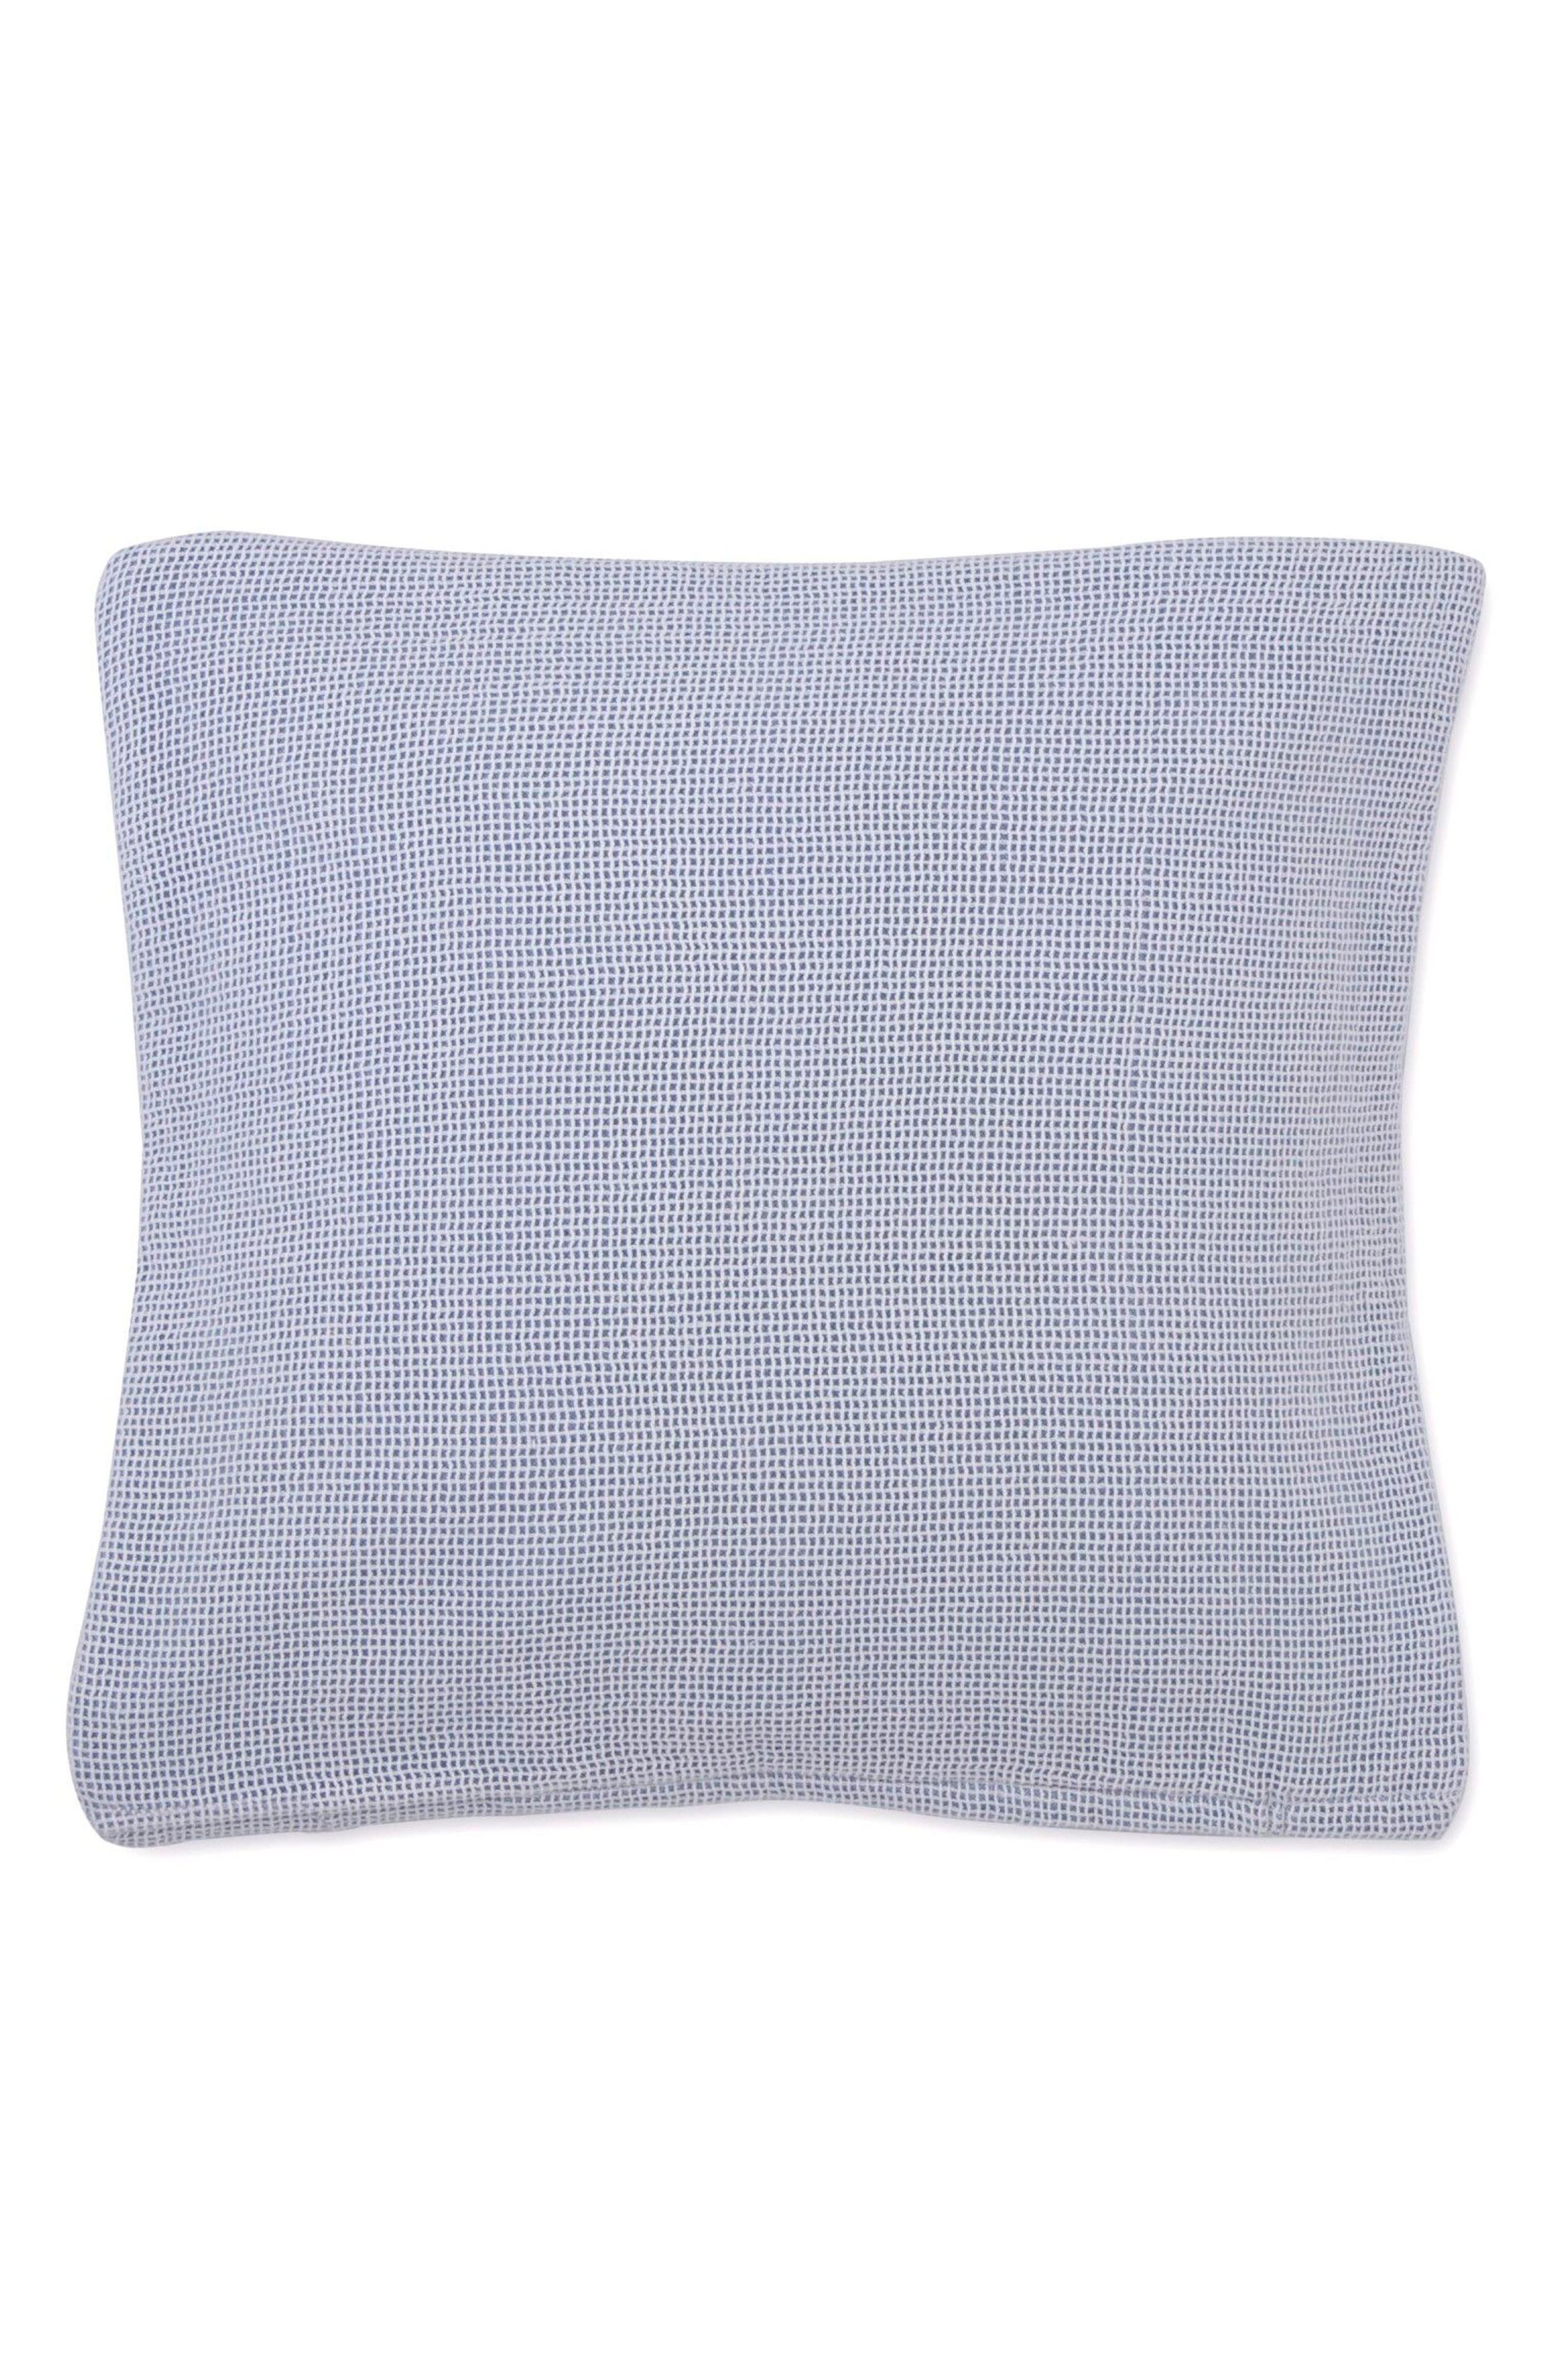 Southern Tide Sea Breeze Square Accent Pillow